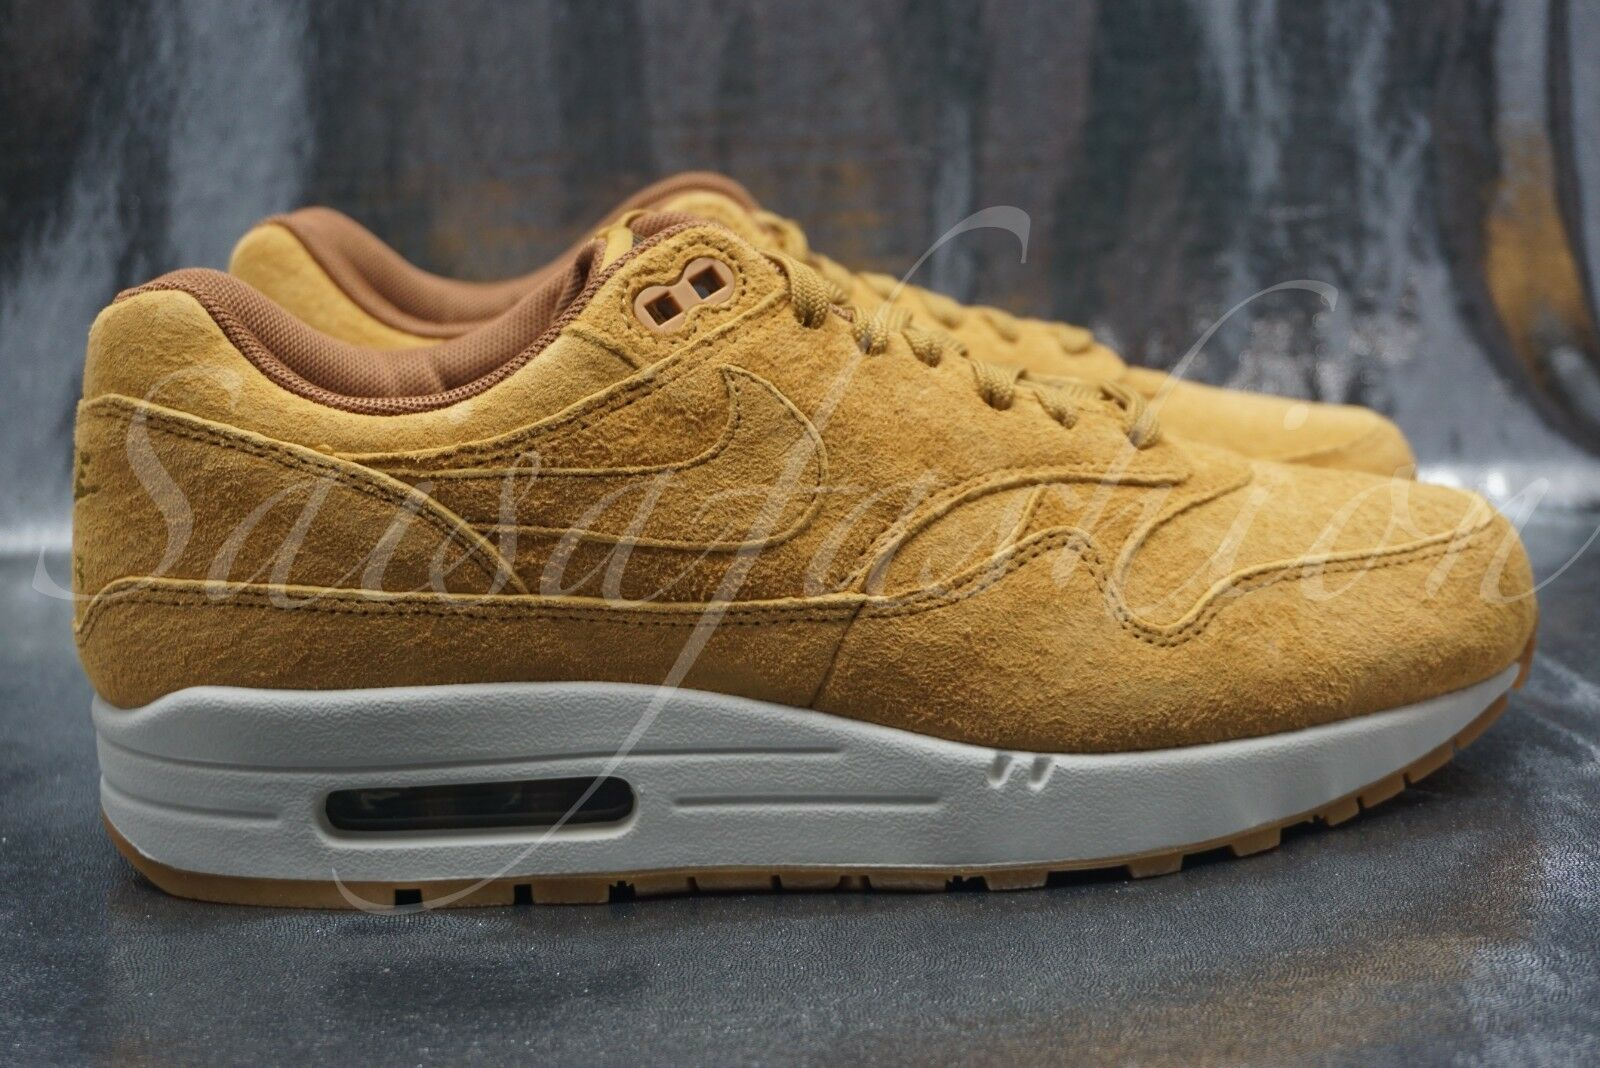 Nike Air Max 1 Premium Wheat Wheat-Light Bone Suede 875844 701 Men Size 12